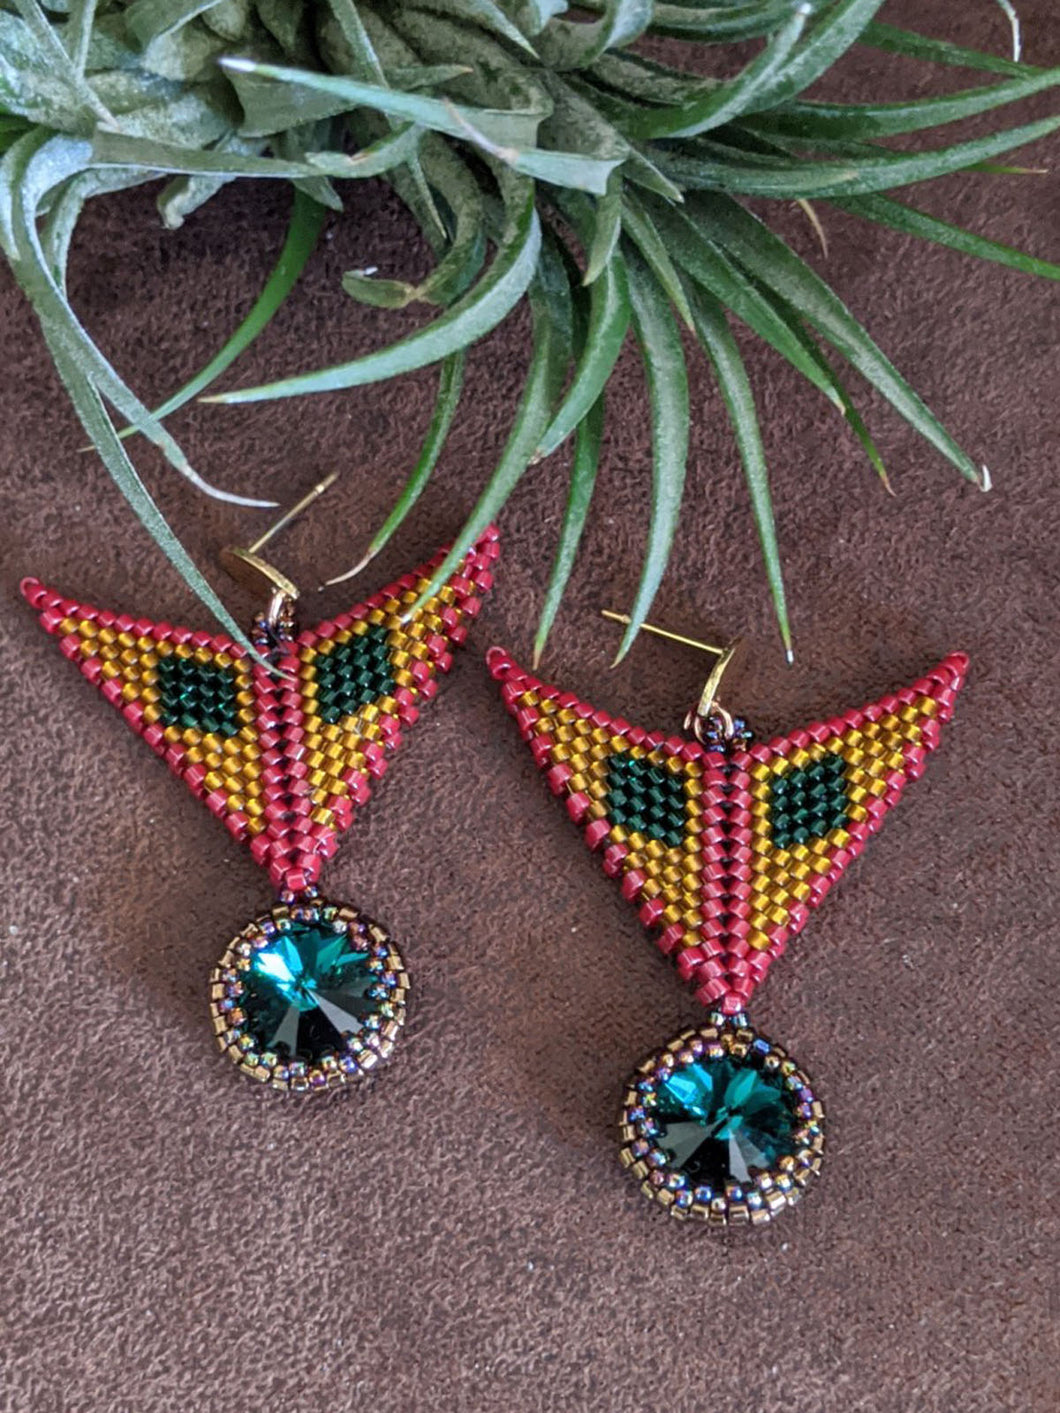 Handmade Beaded Earrings in Maroon & Emerald